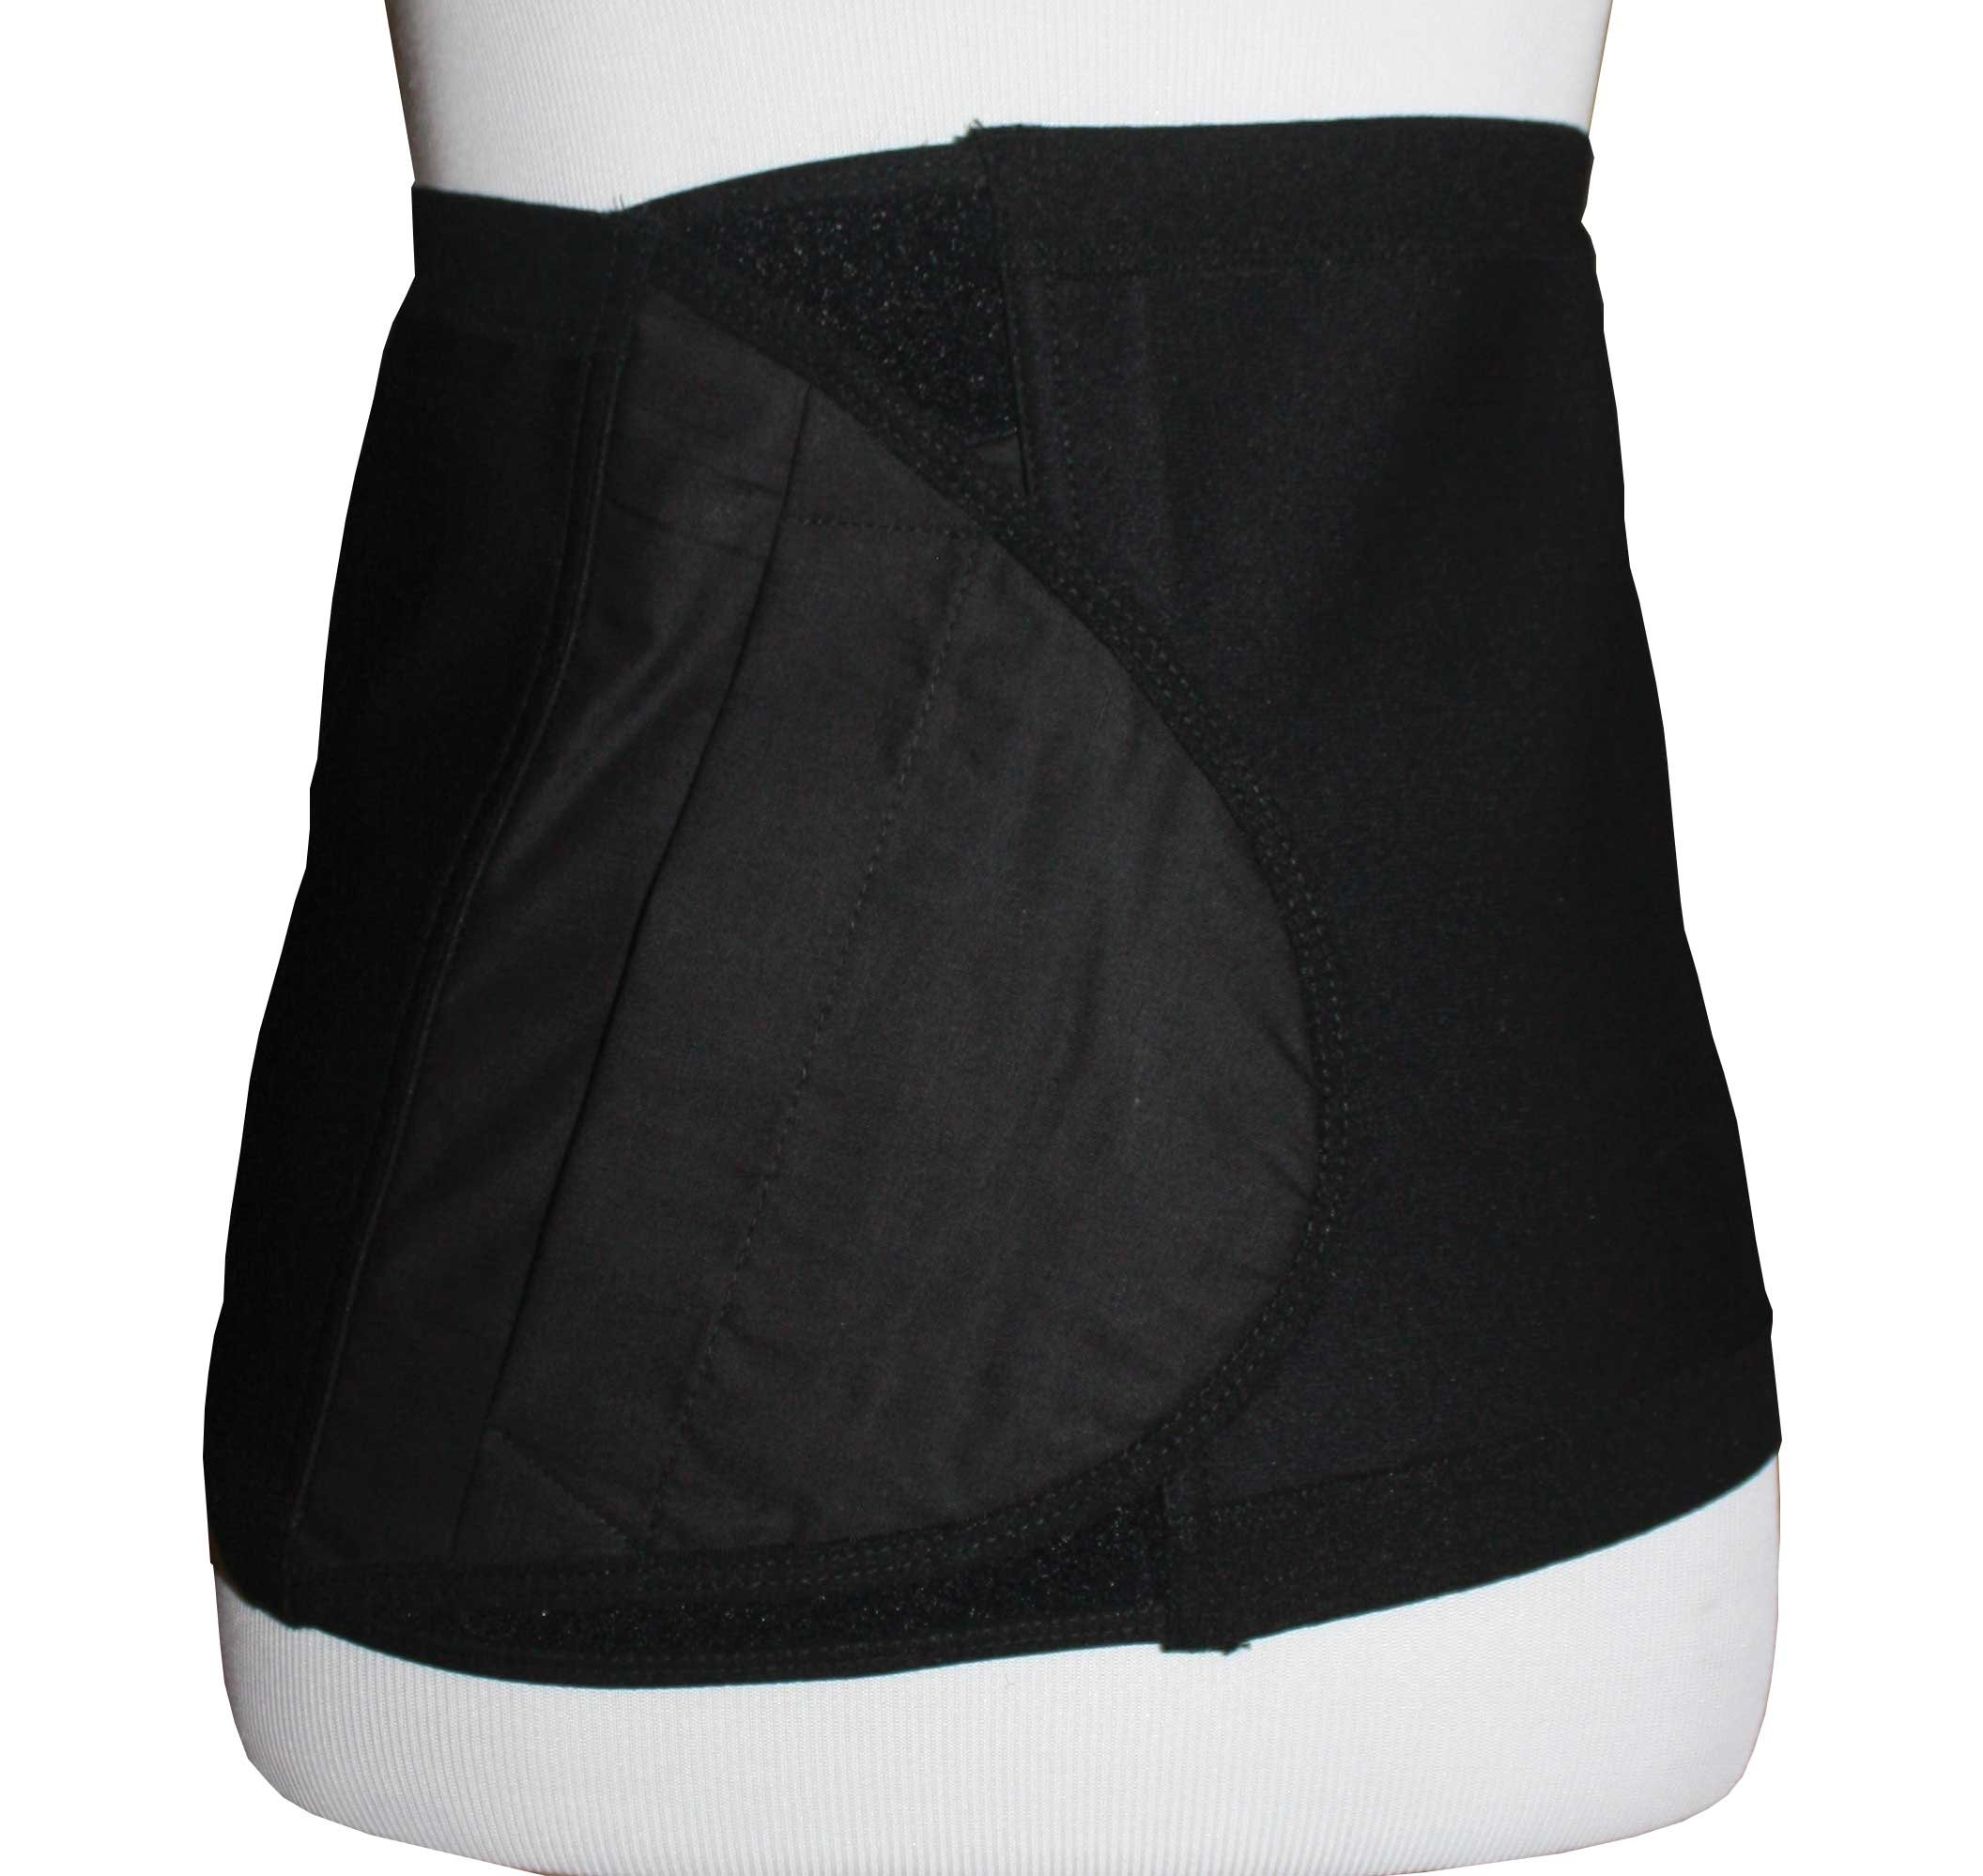 Safe n' Simple Hernia Support Belt, 26cm, Black, X-Small